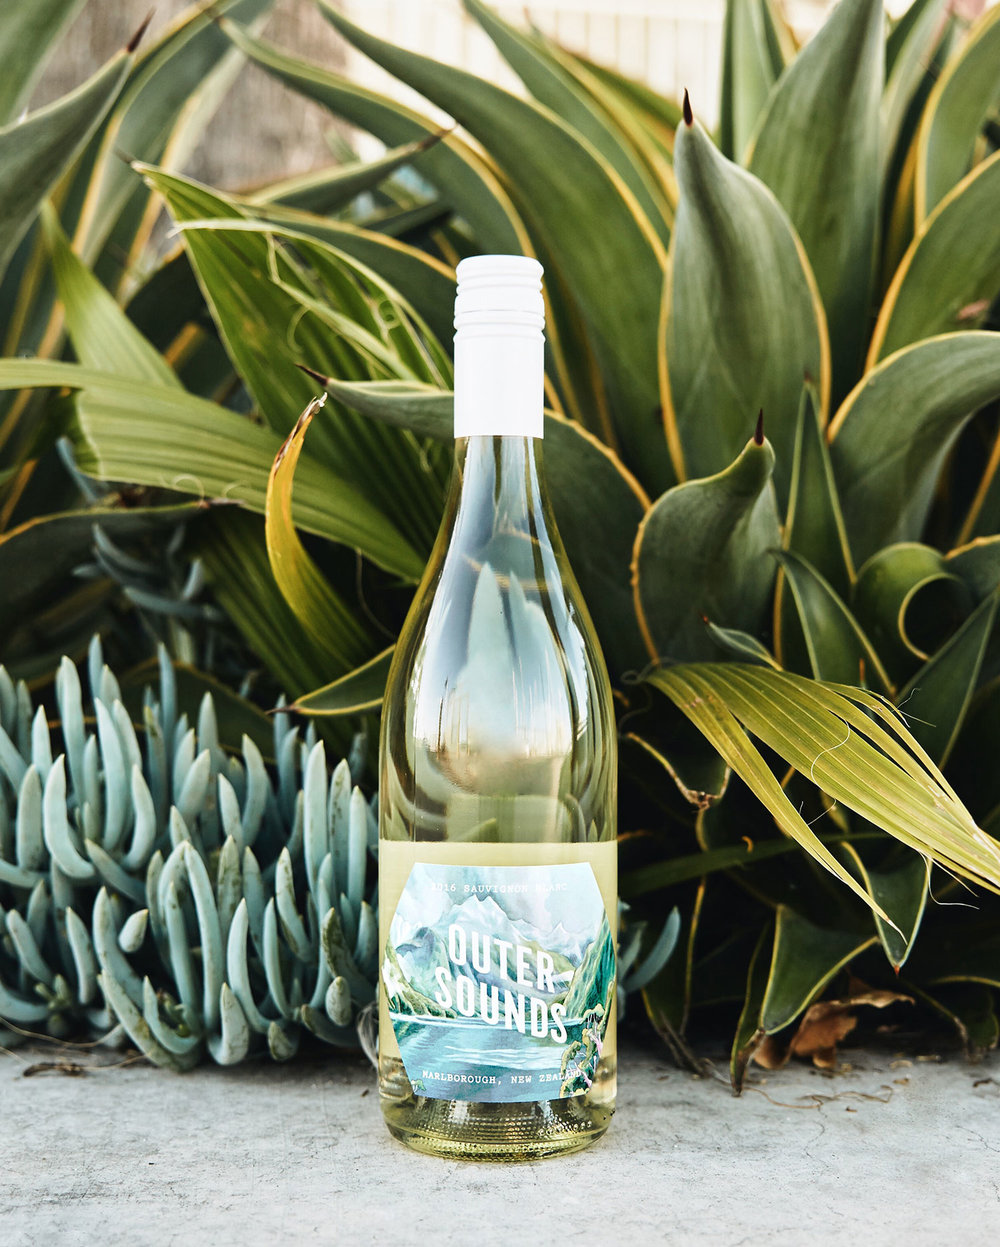 Outer Sounds Sauvignon Blanc